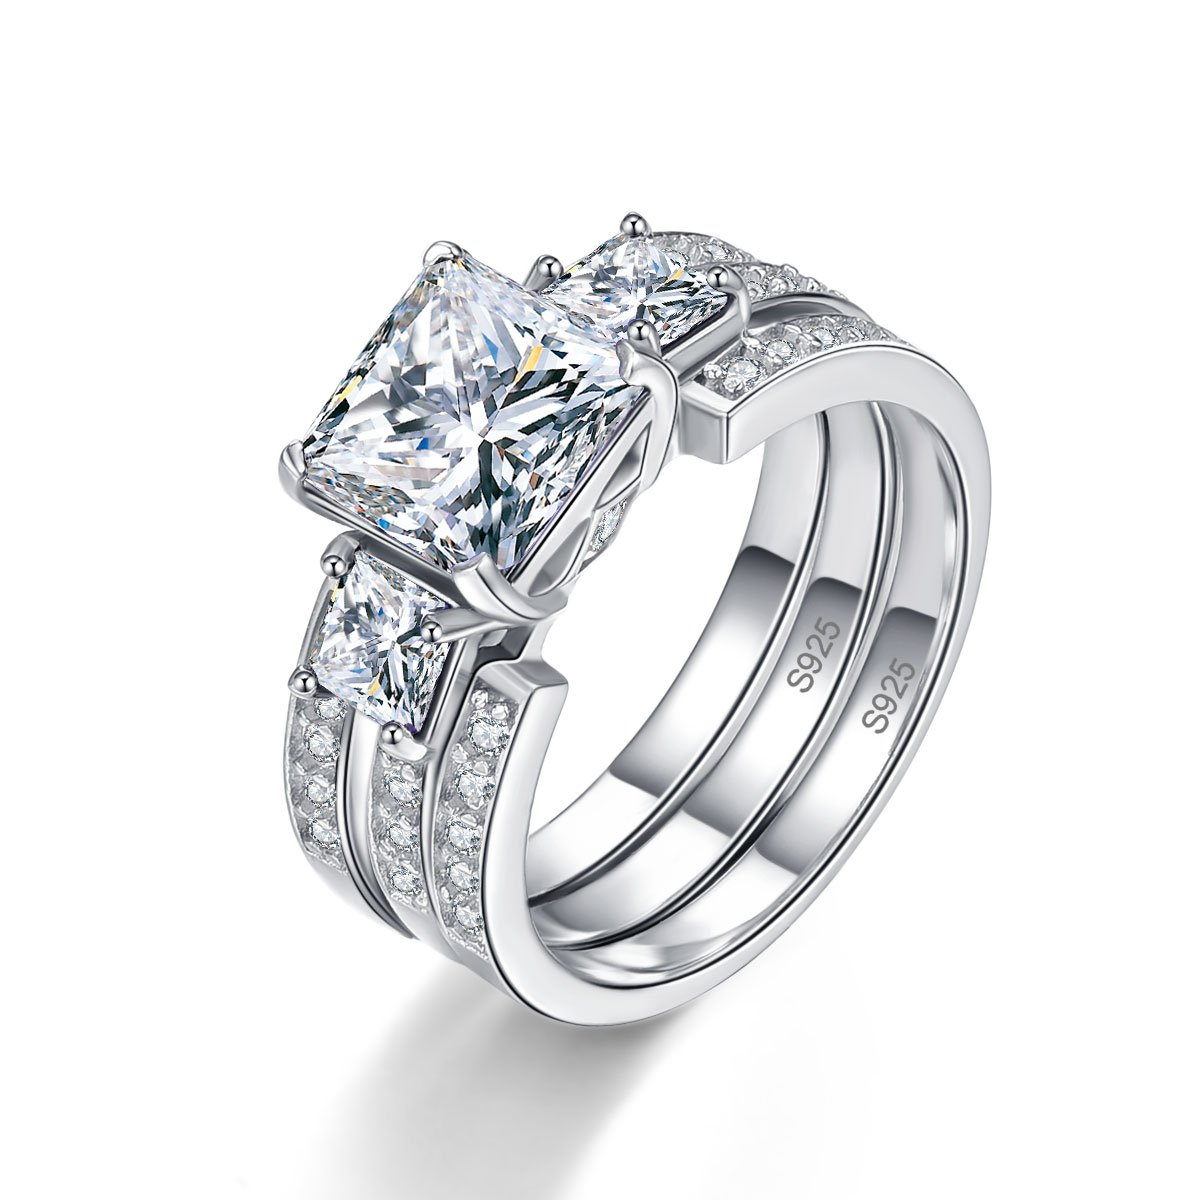 BONLAVIE Solid Sterling Silver Round & Princess Cut White CZ Eternity Wedding Ring Sets for Her Size 7